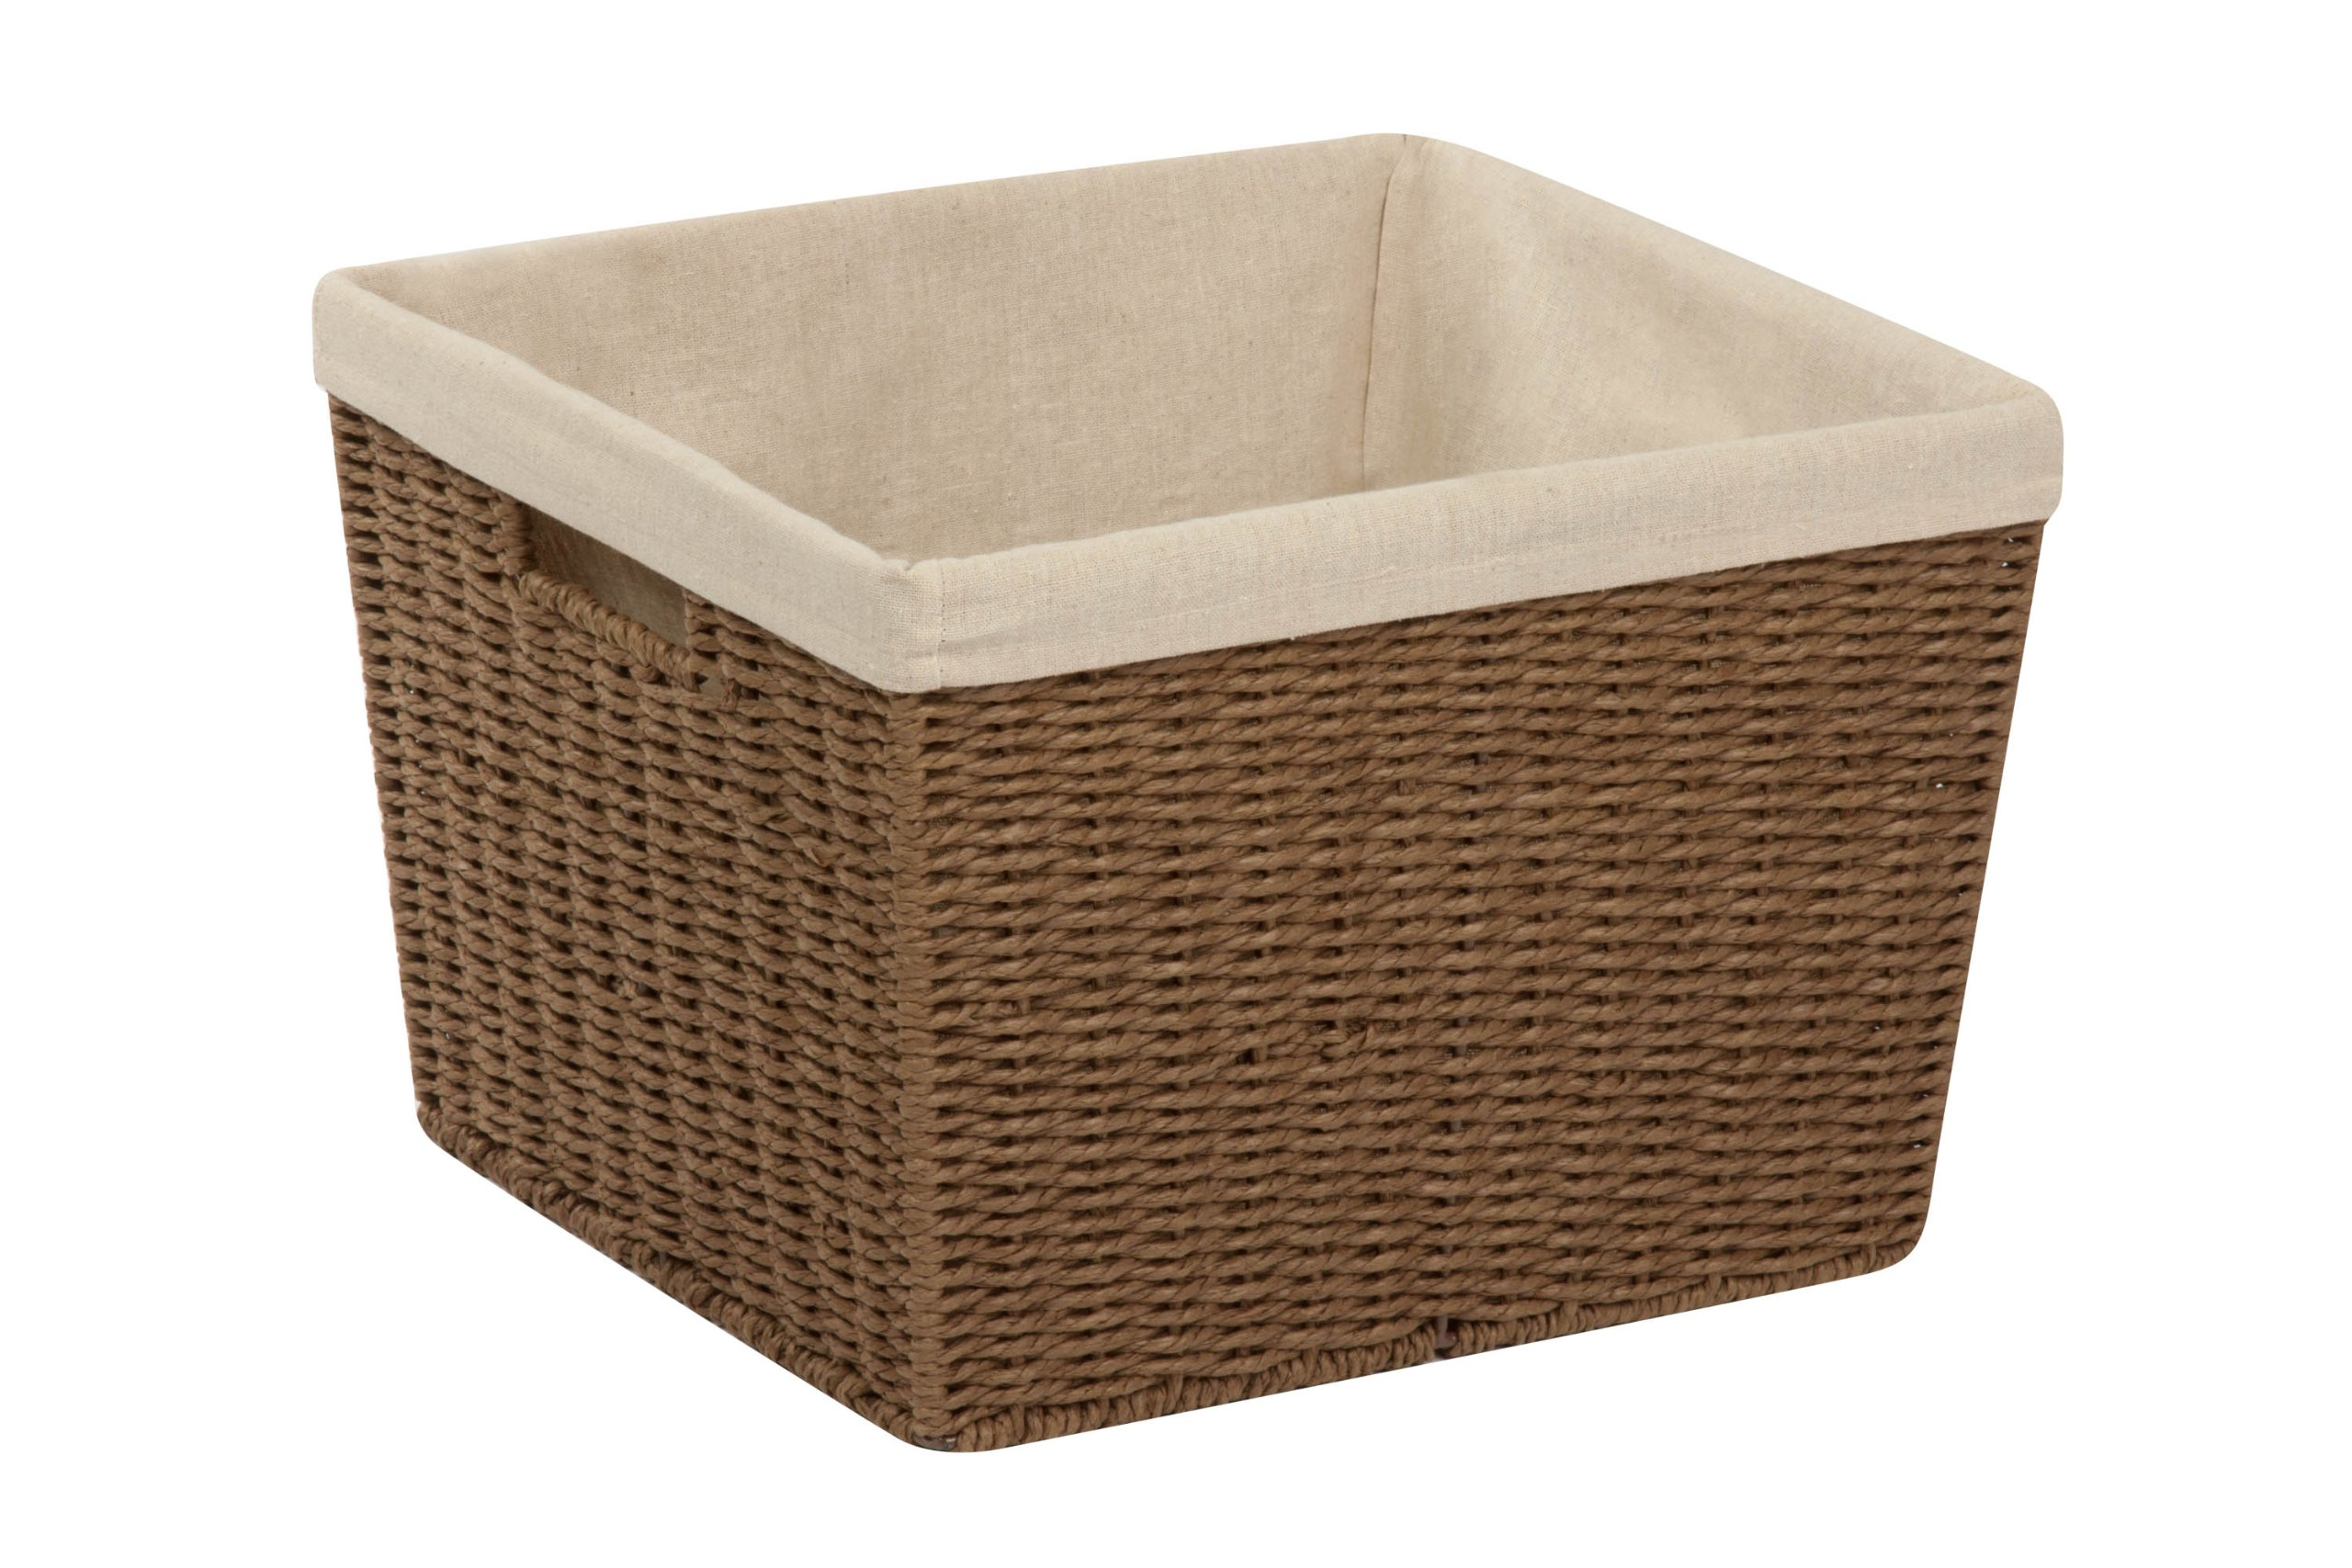 Honey-Can-Do STO-03566 Parchment Cord Basket with Handles and Liner, Brown, 13 x 15 x 10 inches